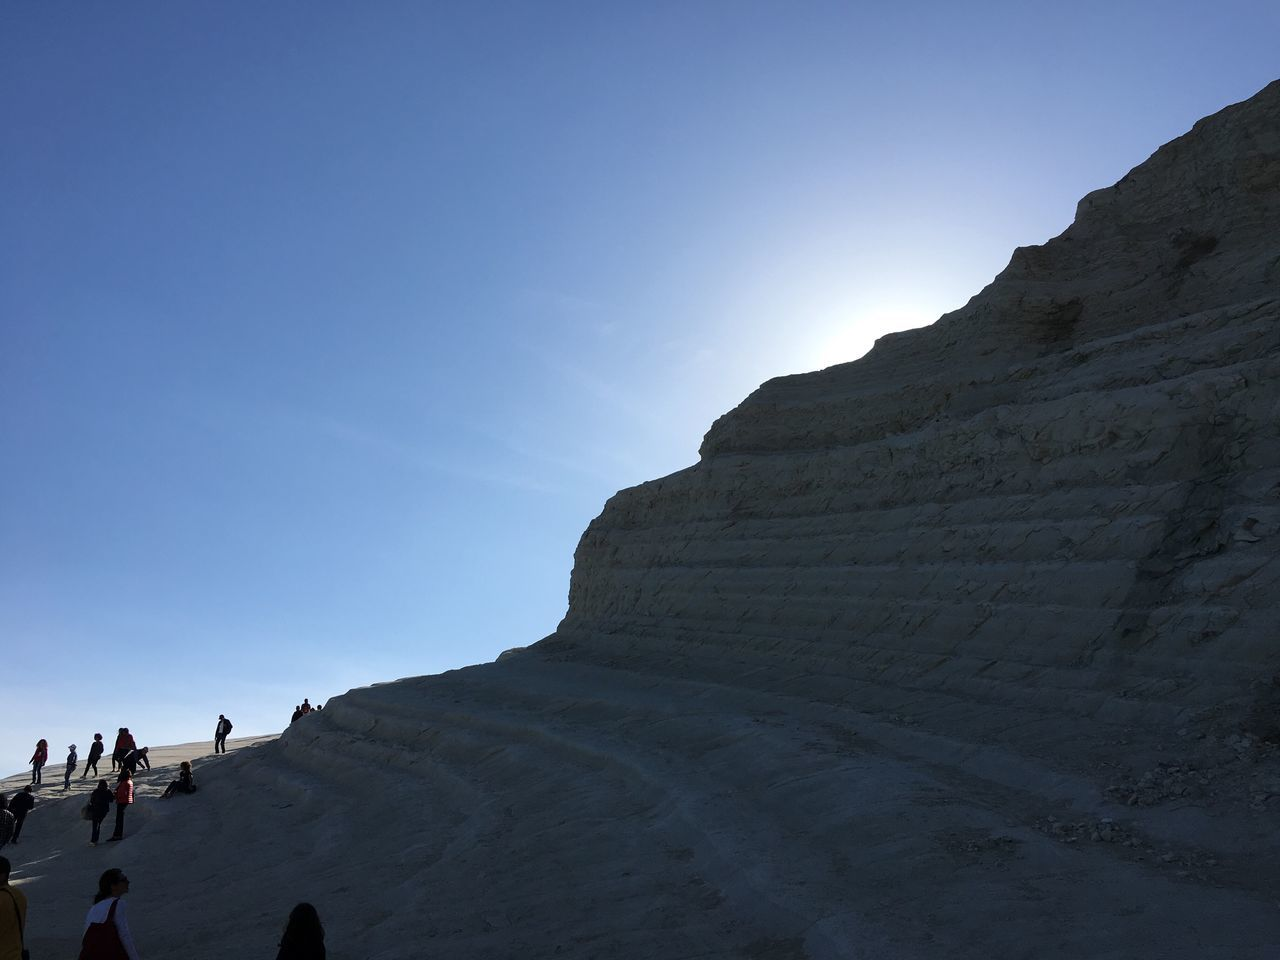 Scala Dei Turchi Agrigento Sicily Real People Clear Sky Large Group Of People Leisure Activity Nature Lifestyles Travel Destinations Day Tourism Men Vacations Scenics Women Outdoors Beauty In Nature Blue Mountain Cliff Sky Landscape